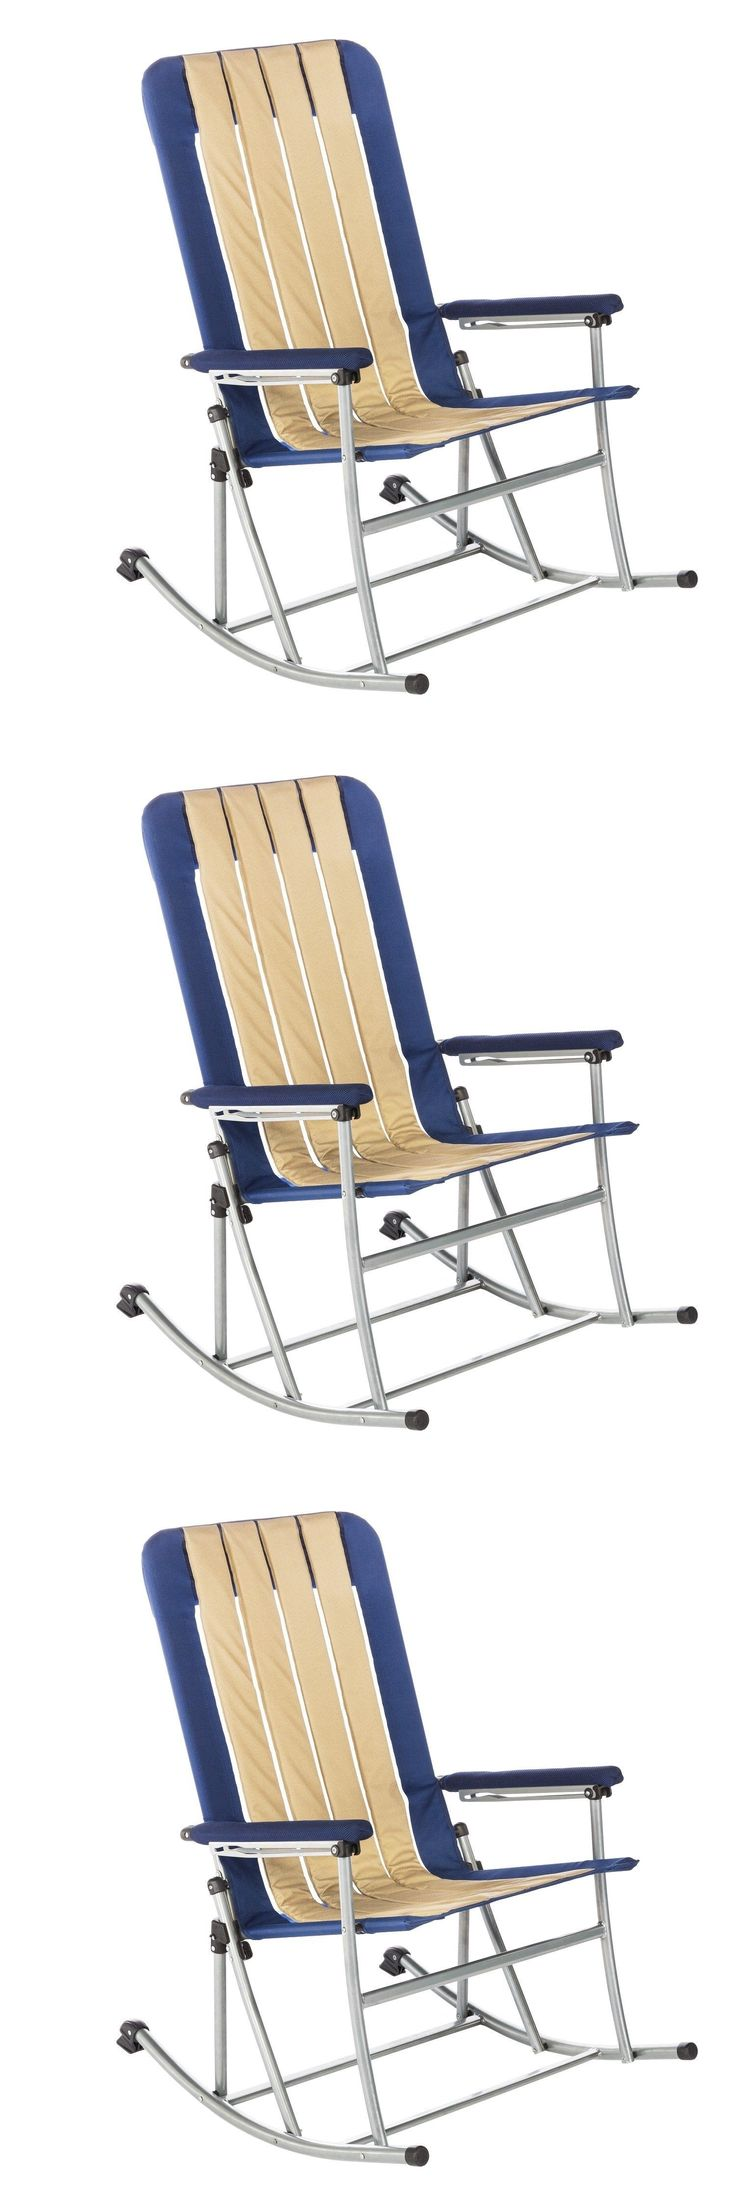 Camping Furniture 16038: Folding Lawn Chair Outdoor Patio Beach Camping Portable Pool Seat Rocker Rocking -> BUY IT NOW ONLY: $93.99 on eBay!